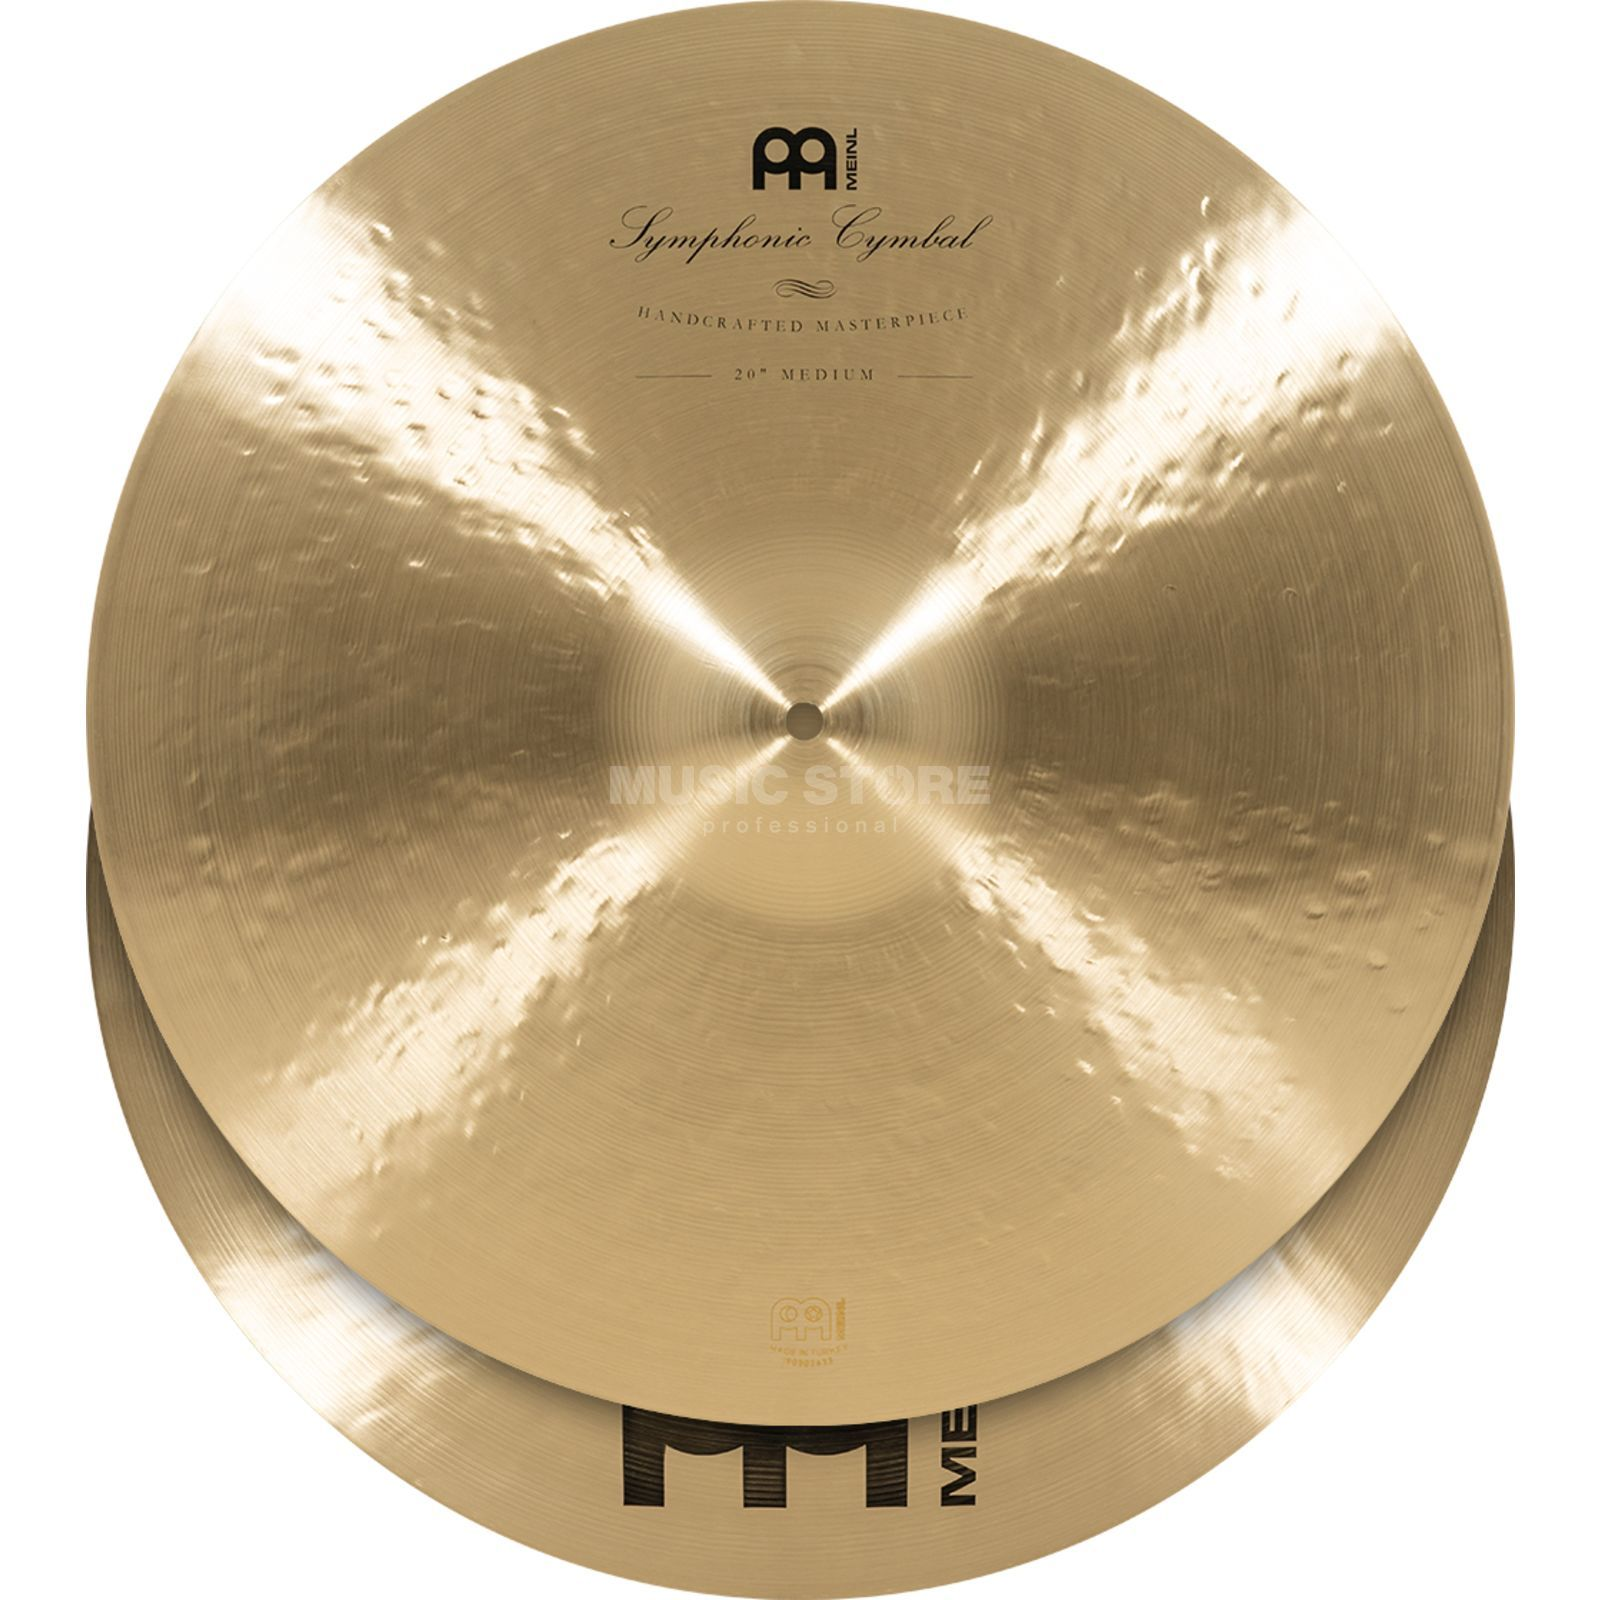 "Meinl Symphonic Cymbals 20"", Medium, SY-20M Product Image"